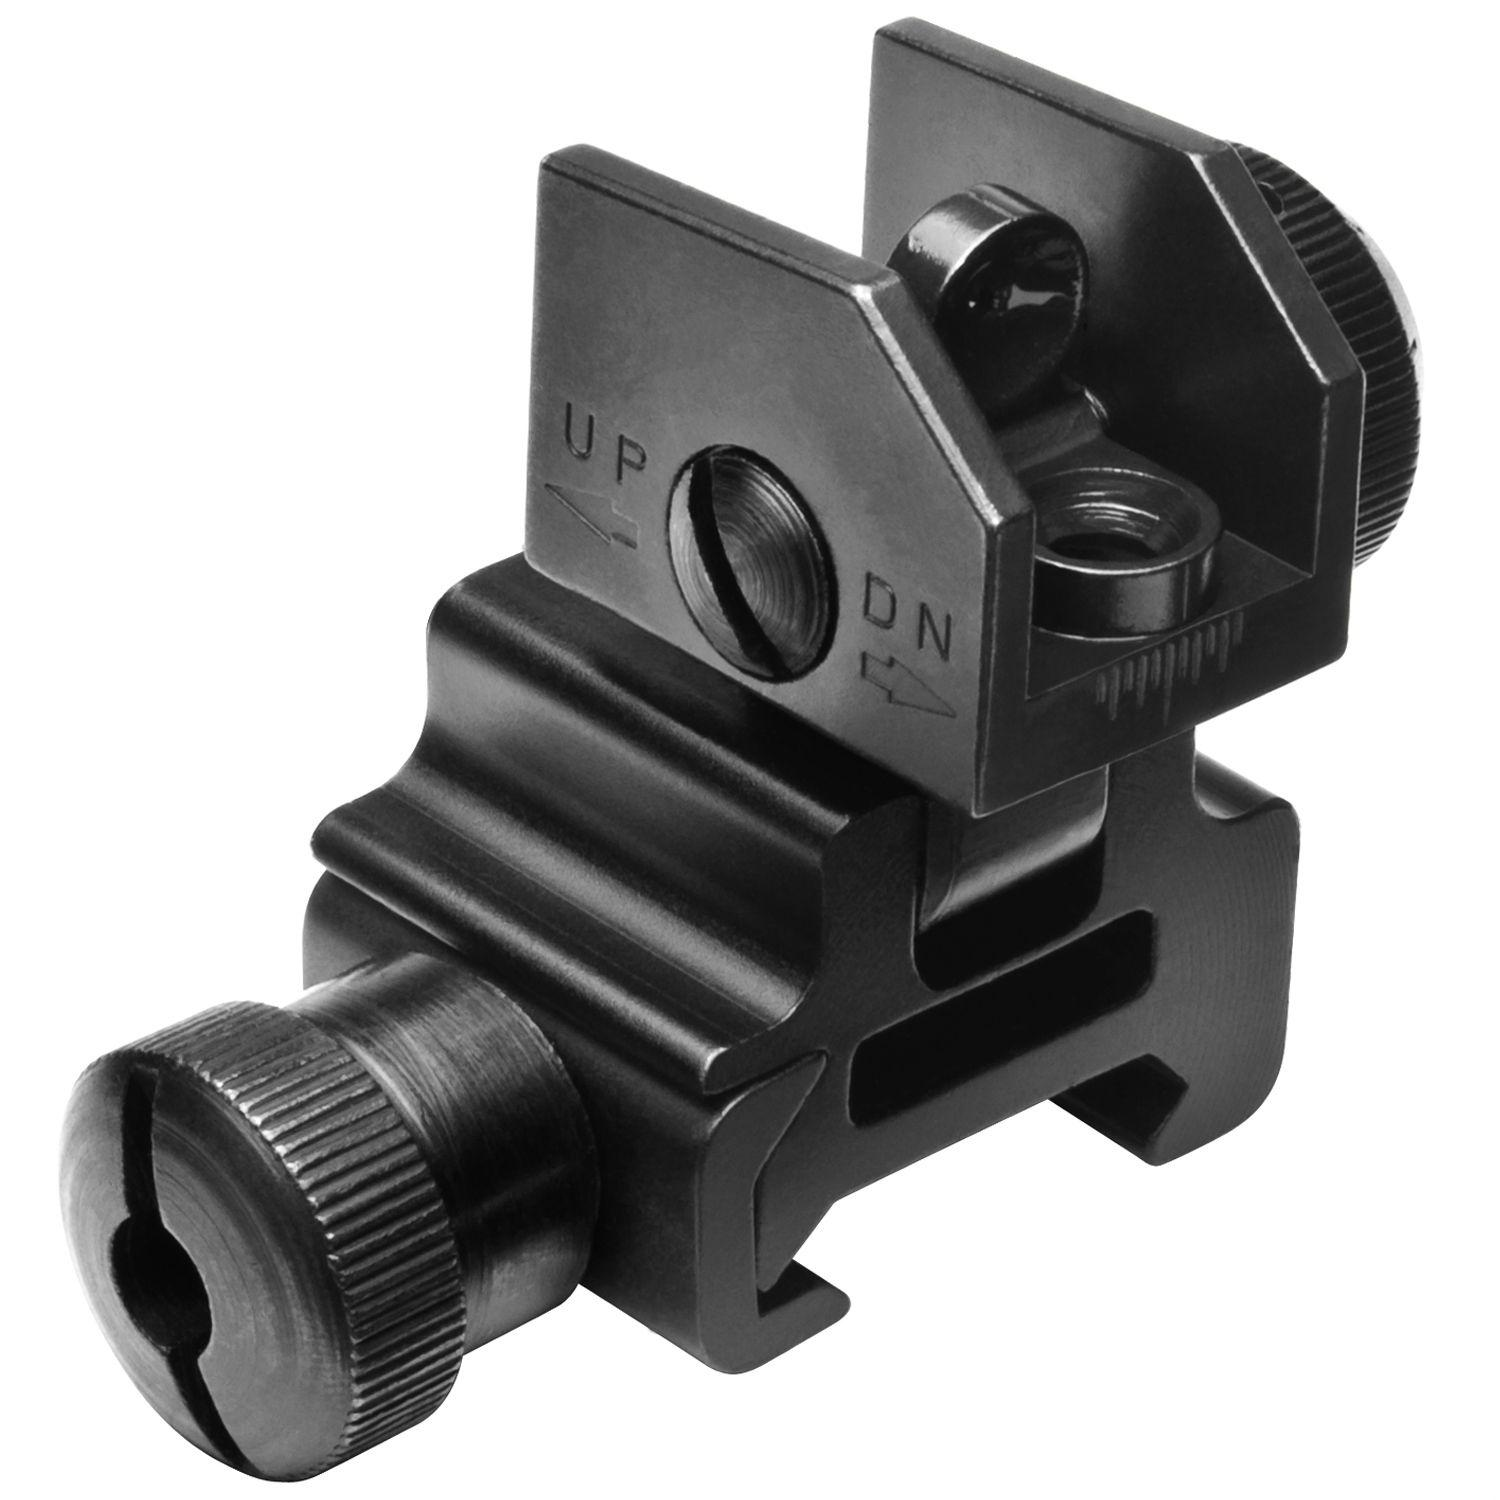 Ncstar AR-15 Style Metal Flip-Up Rear Sight